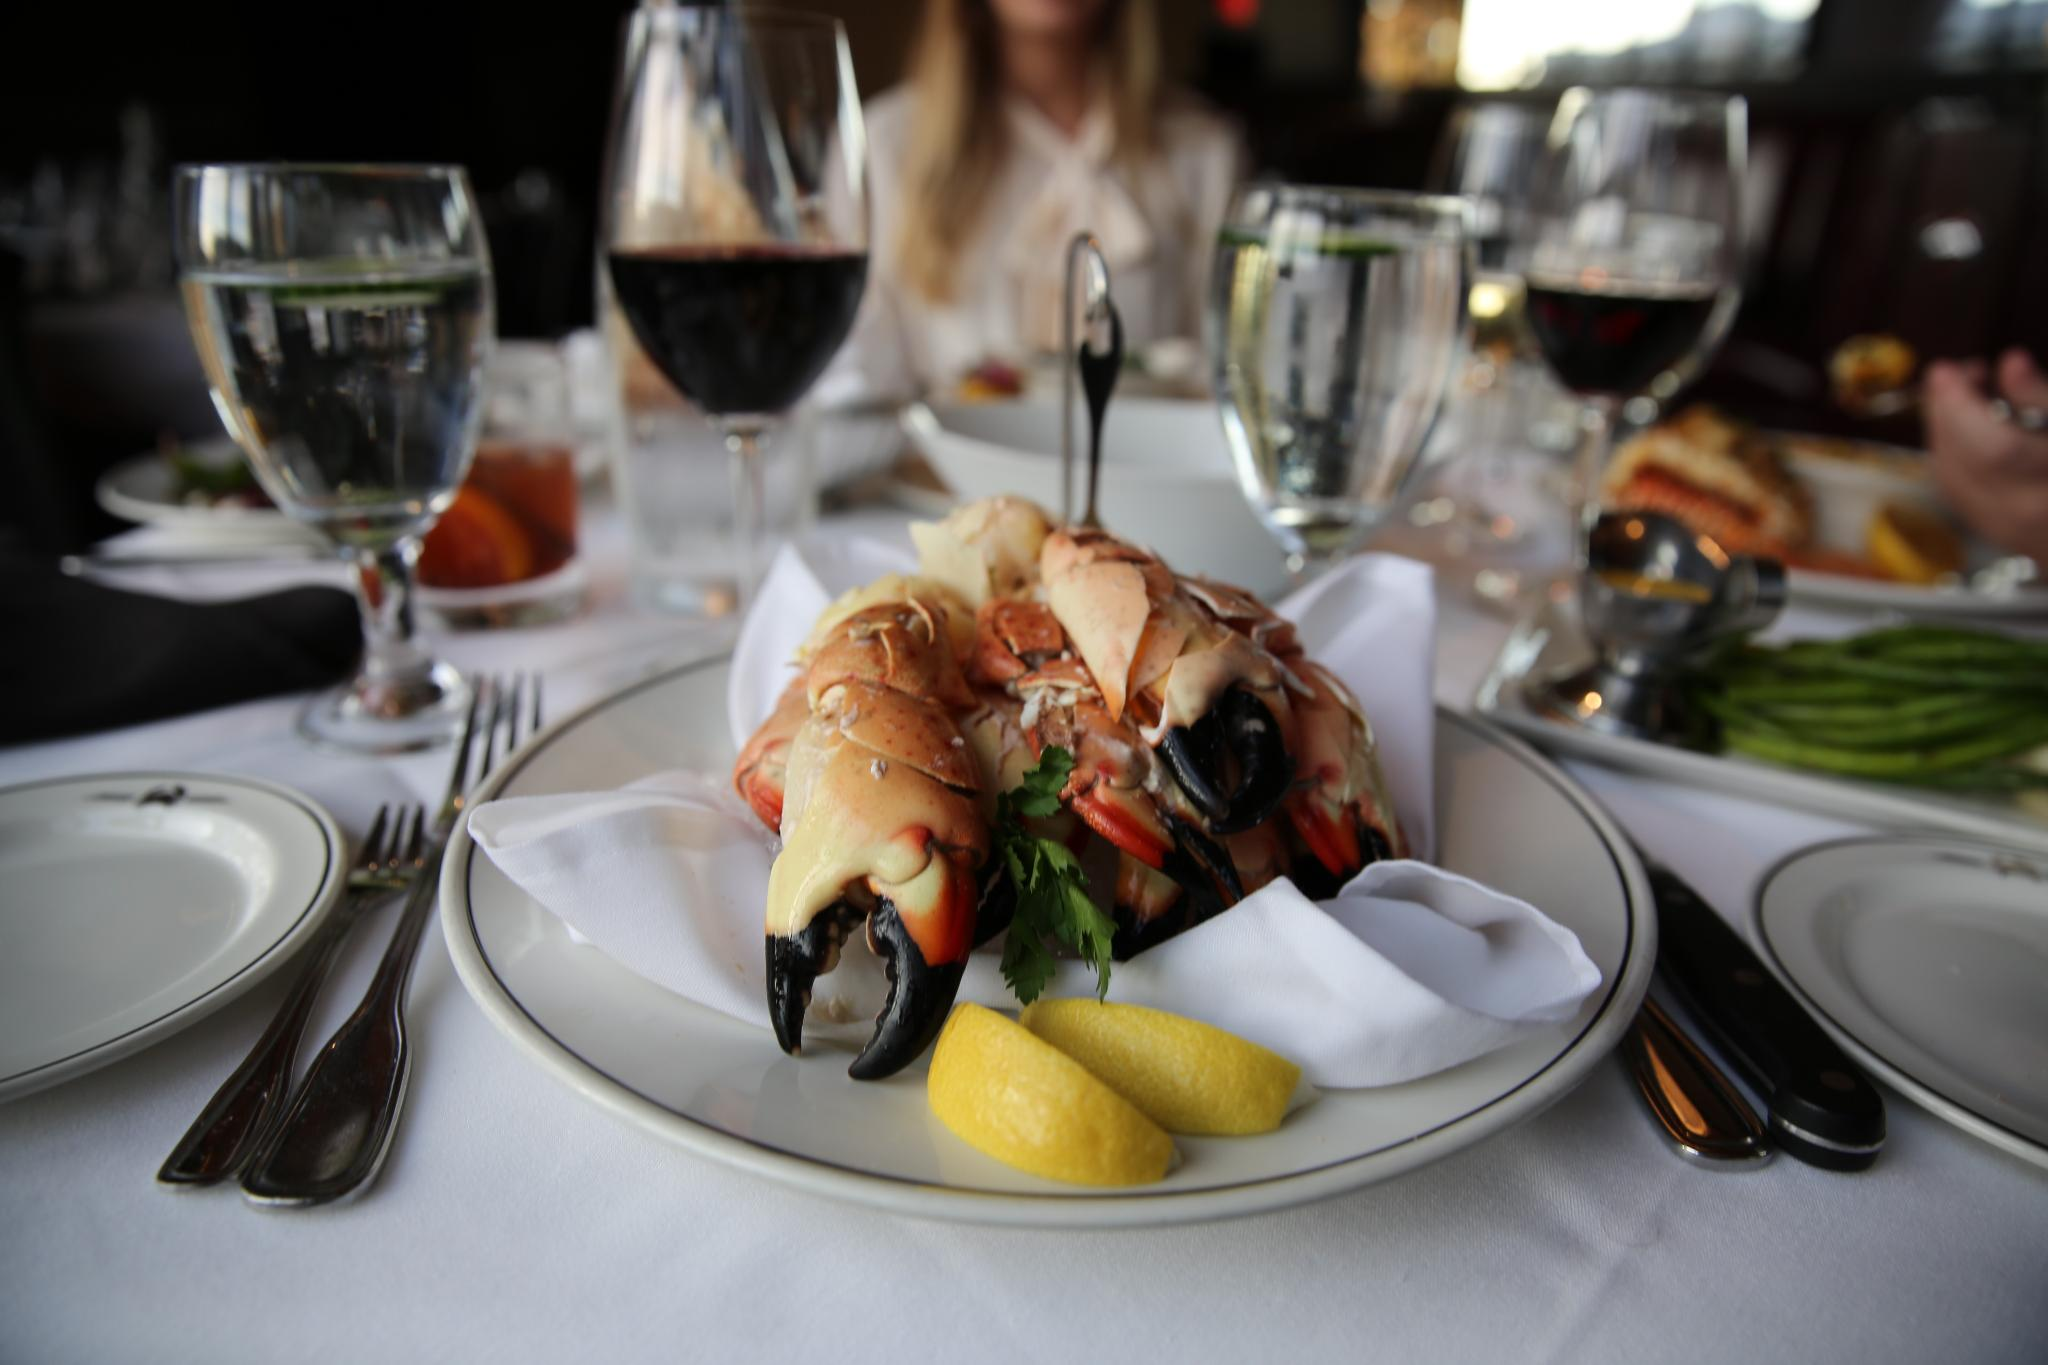 A plate of Florida Stone Crab claws as part of an elegantly set table